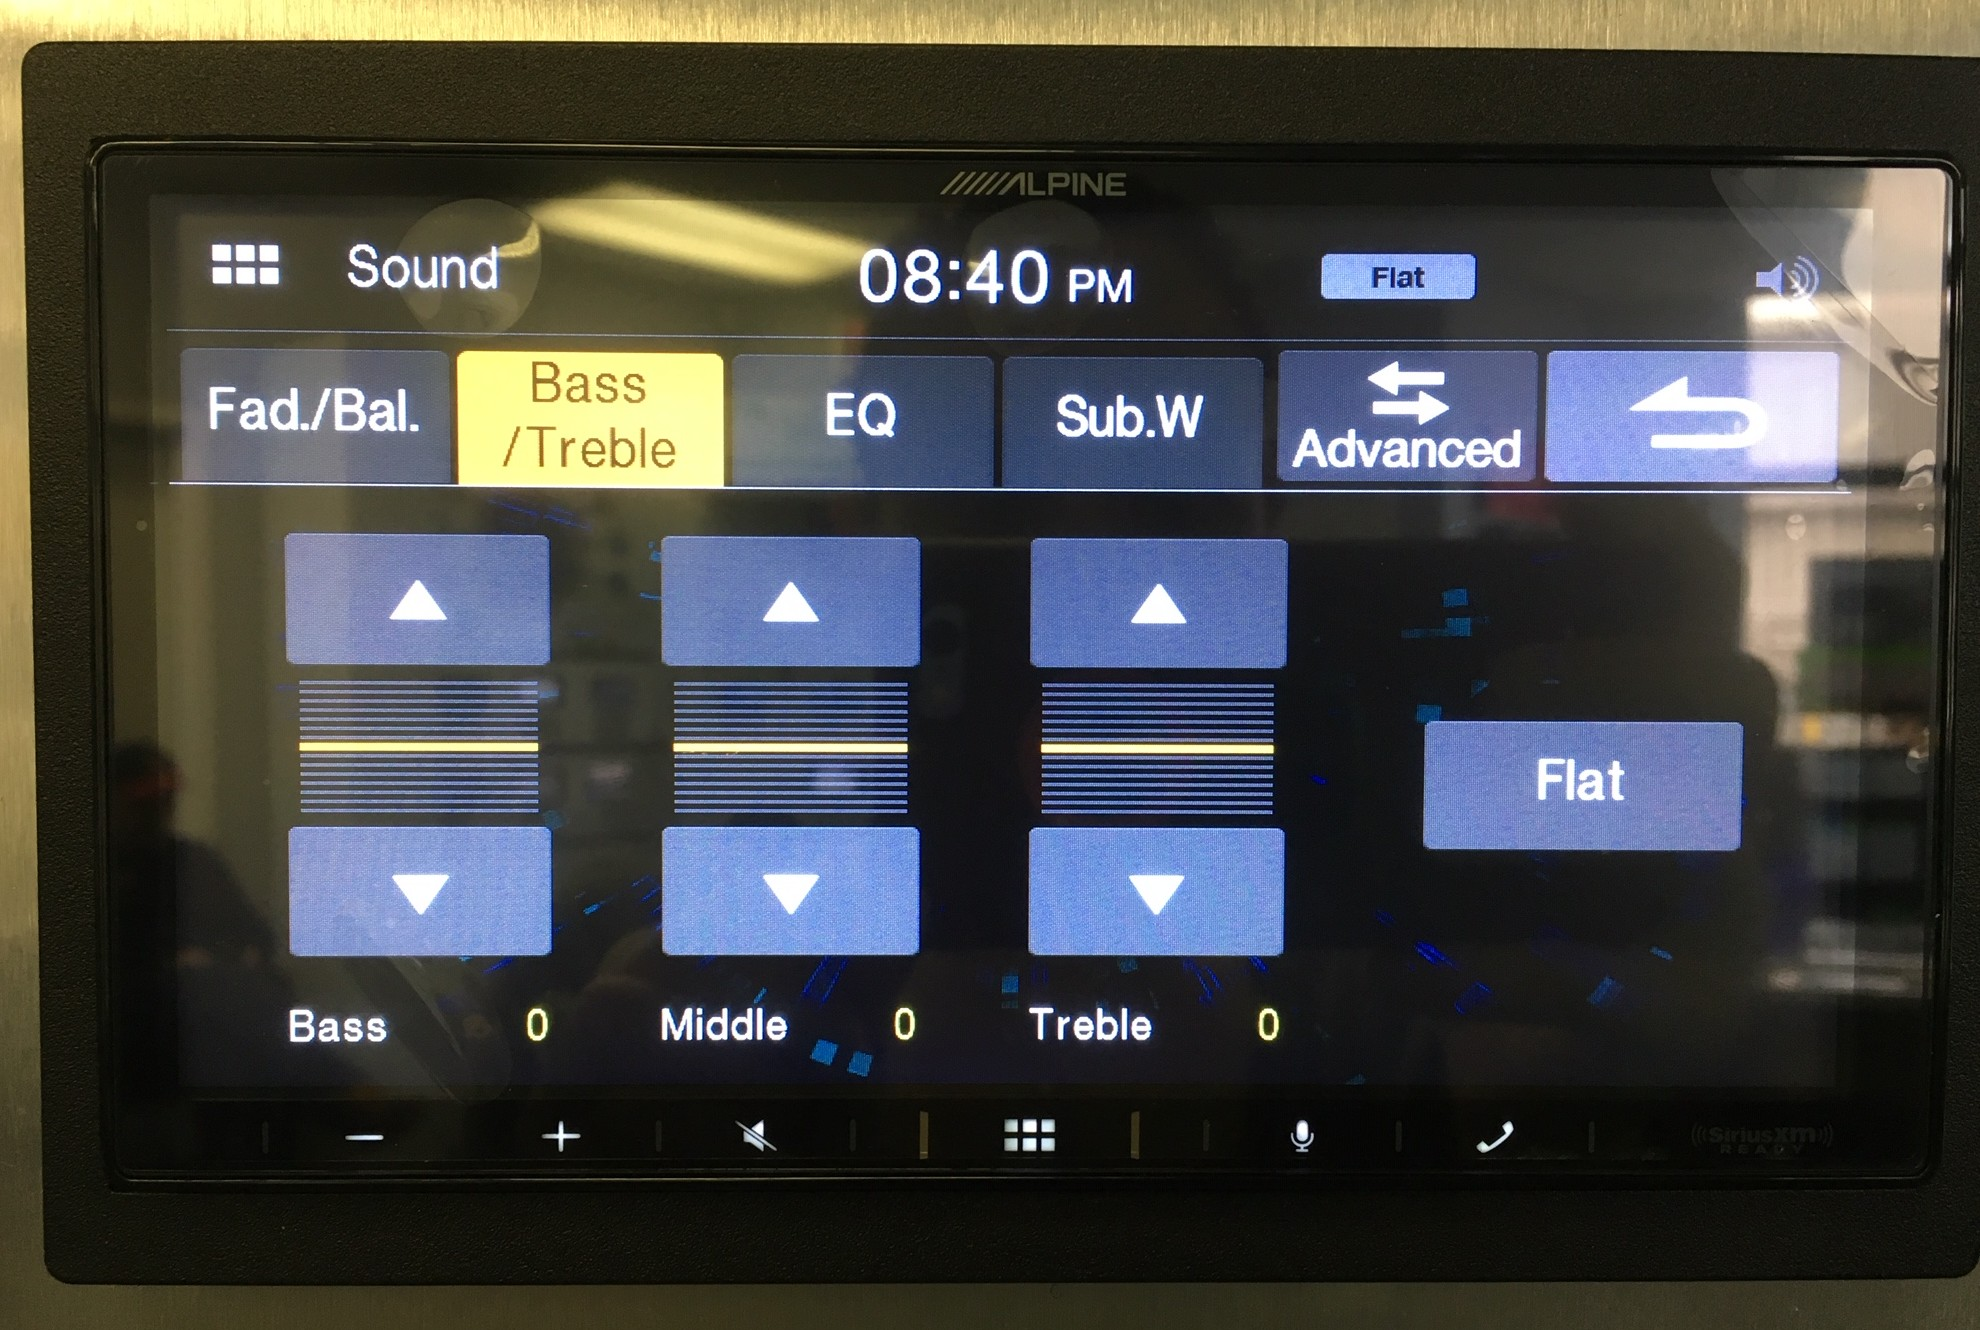 Alpine iLX-W650 Review by Car Stereo Chick